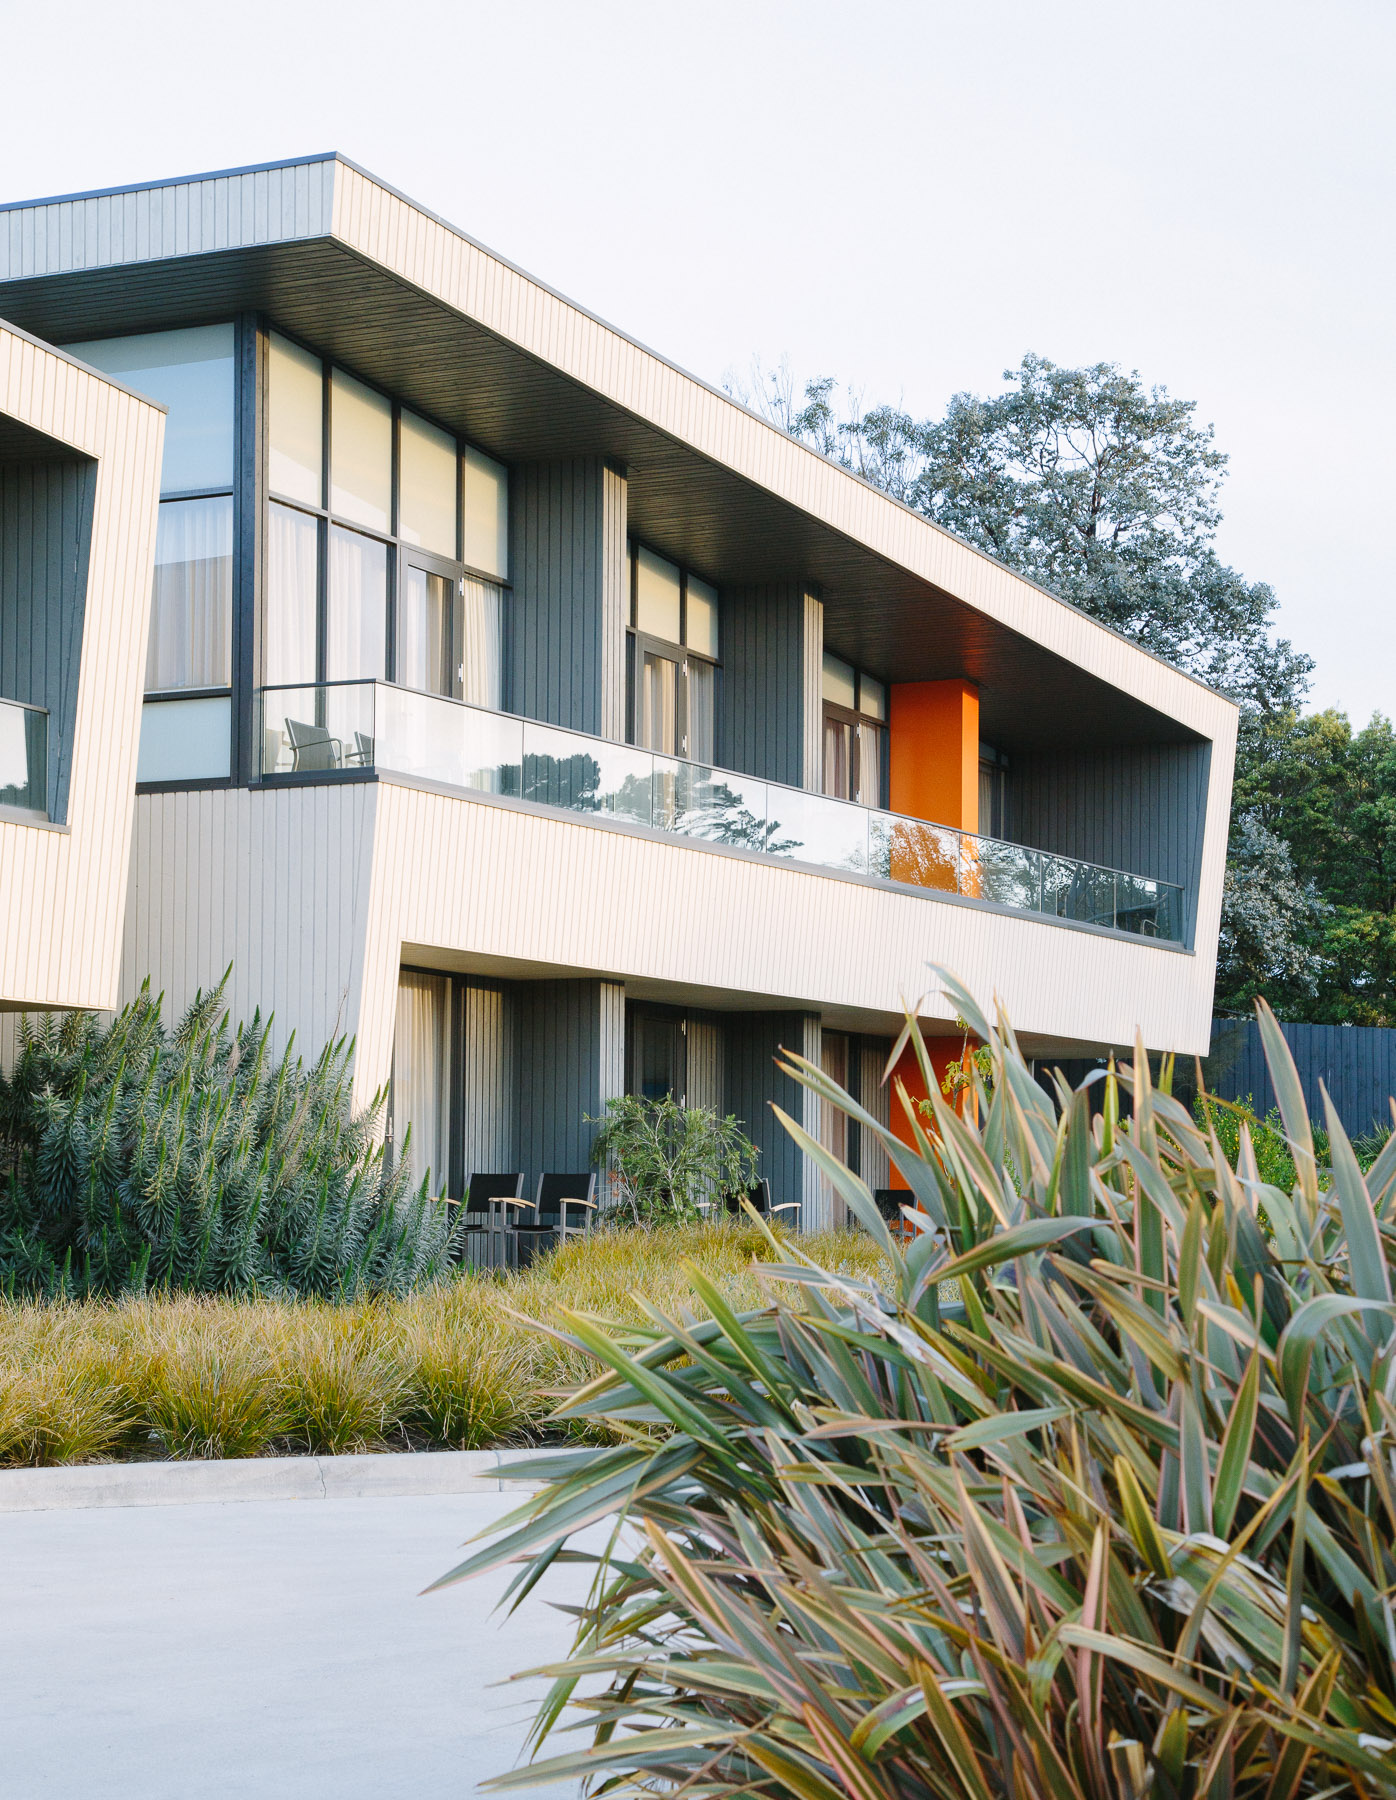 The Flinders Hotel is centrally located and great place to base yourself while exploring the Peninsula.